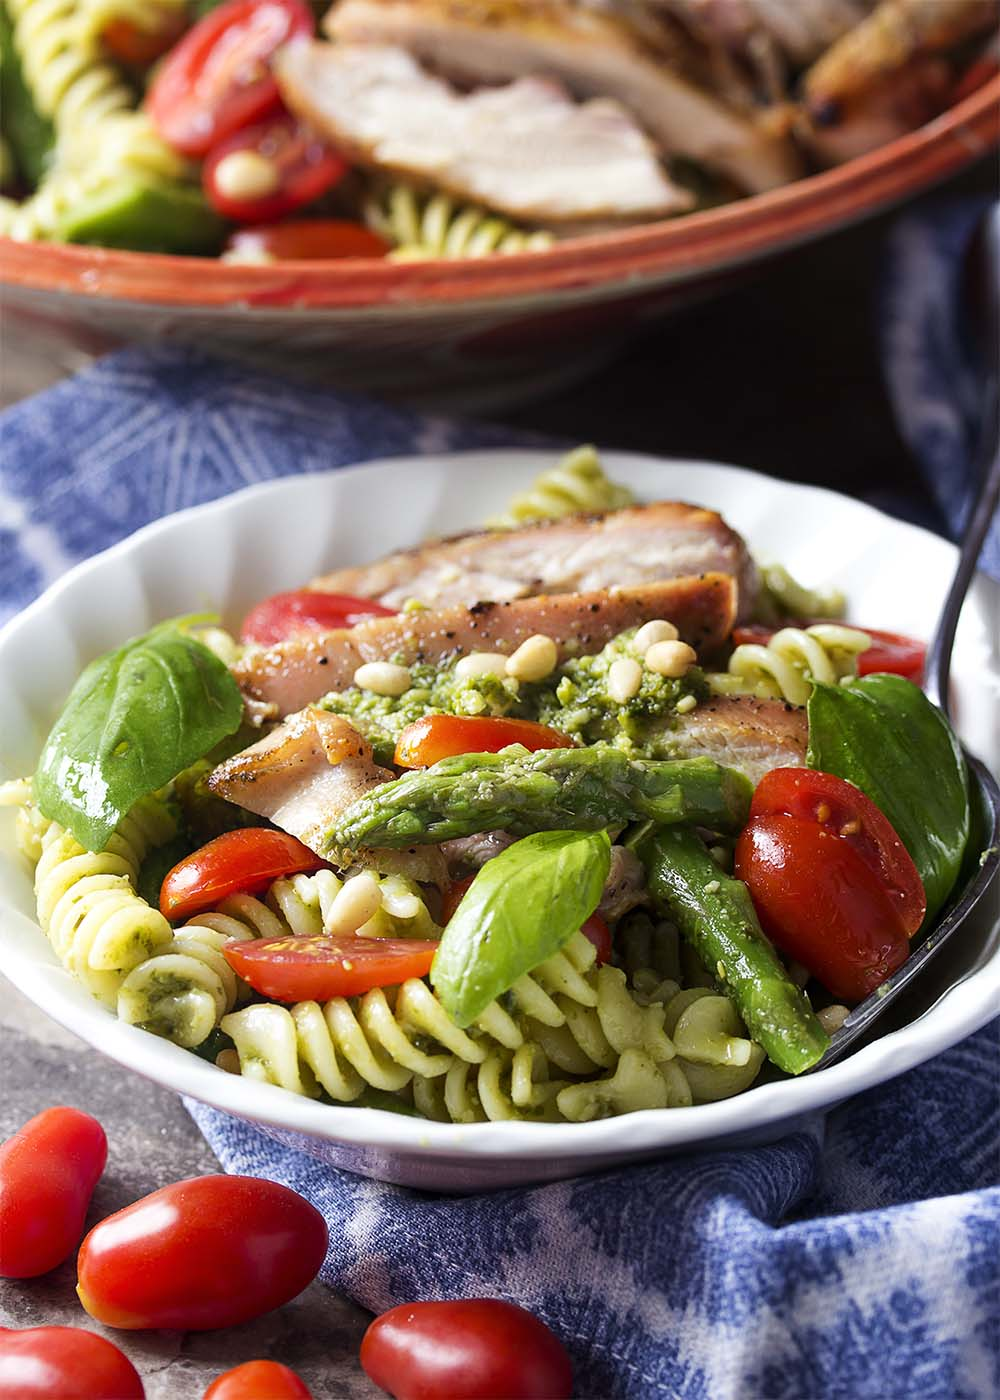 A small bowl of pasta salad with basil pesto, grilled chicken, asparugus, and sliced tomatoes.